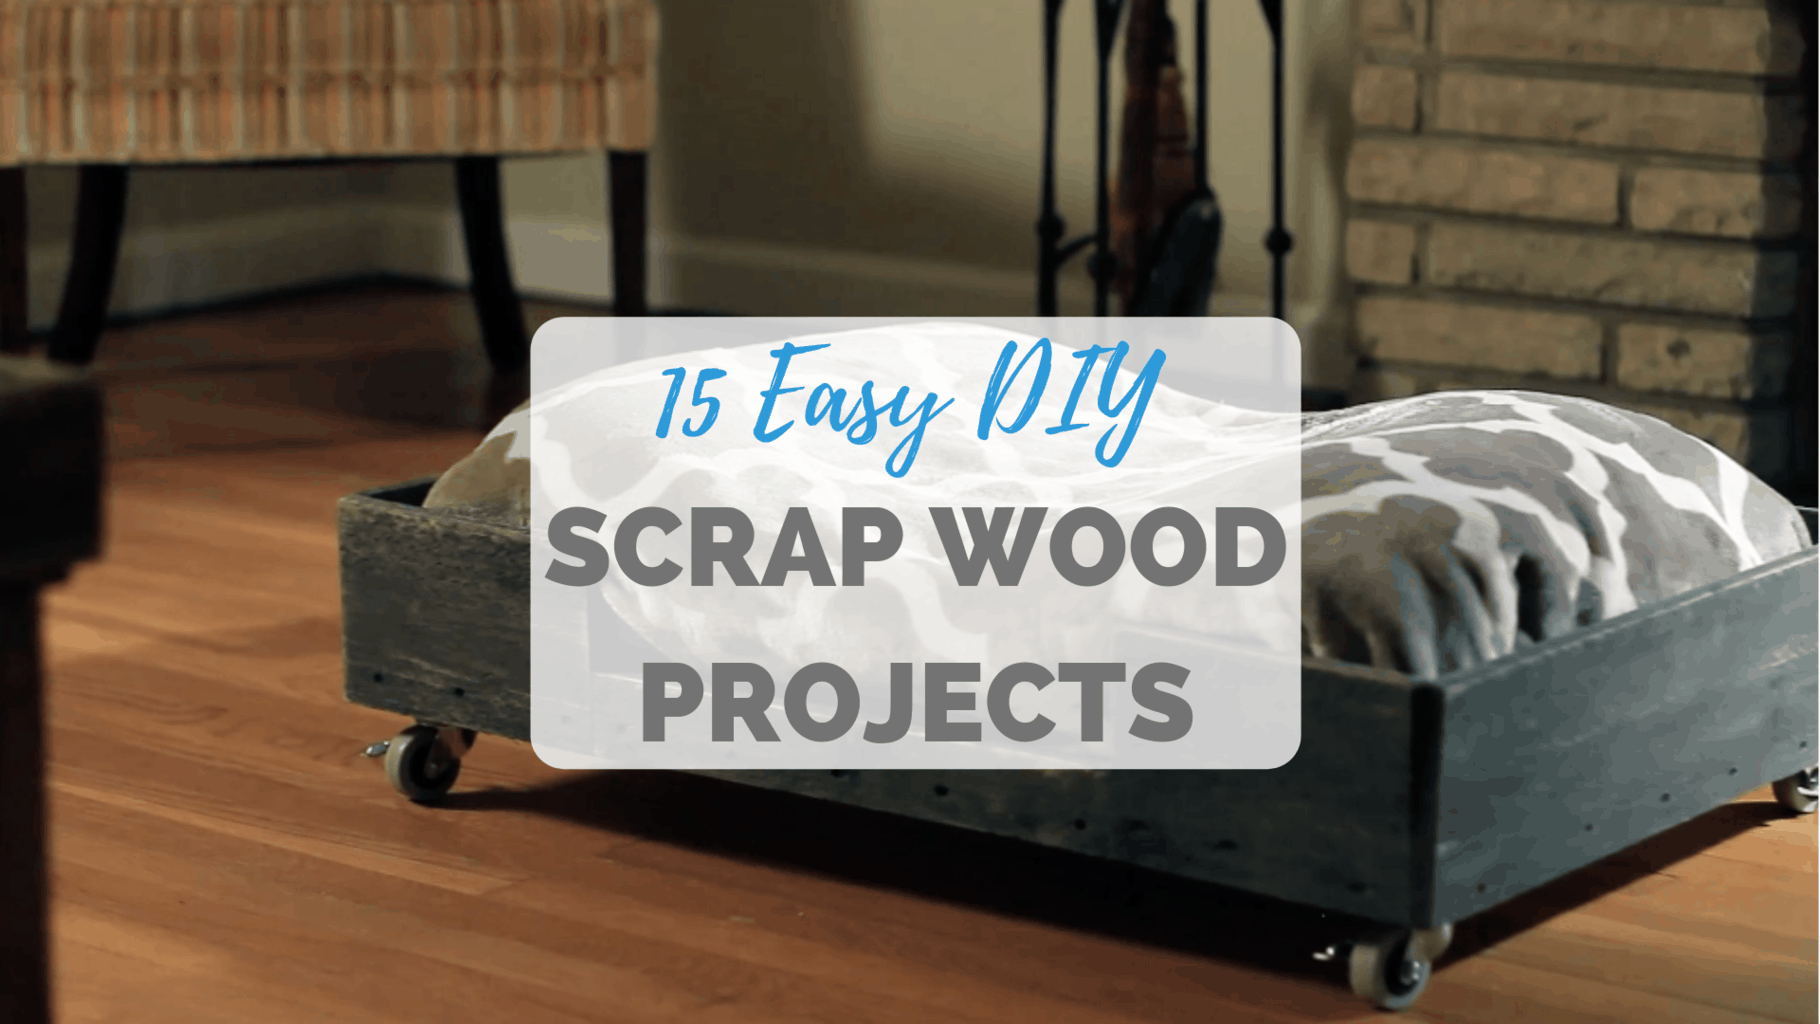 15 Easy Scrap Wood Projects The Saw Guy